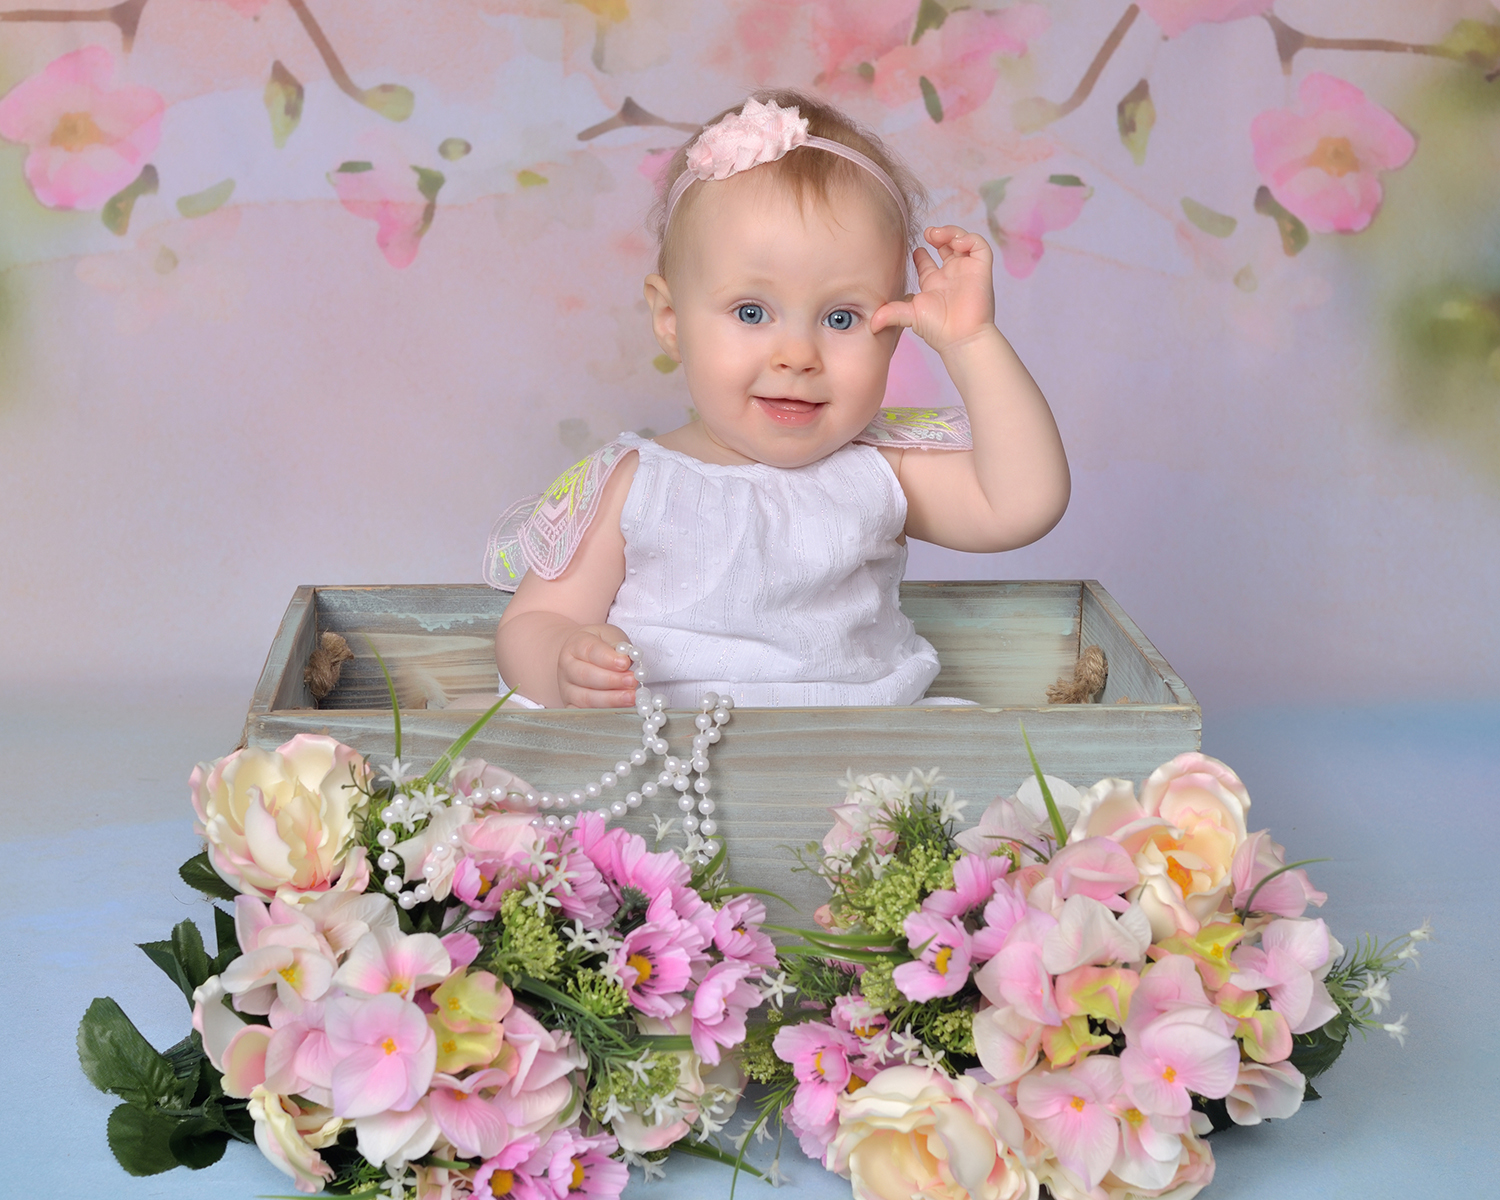 baby-photographer-in-fort-lauderdale2.jpg